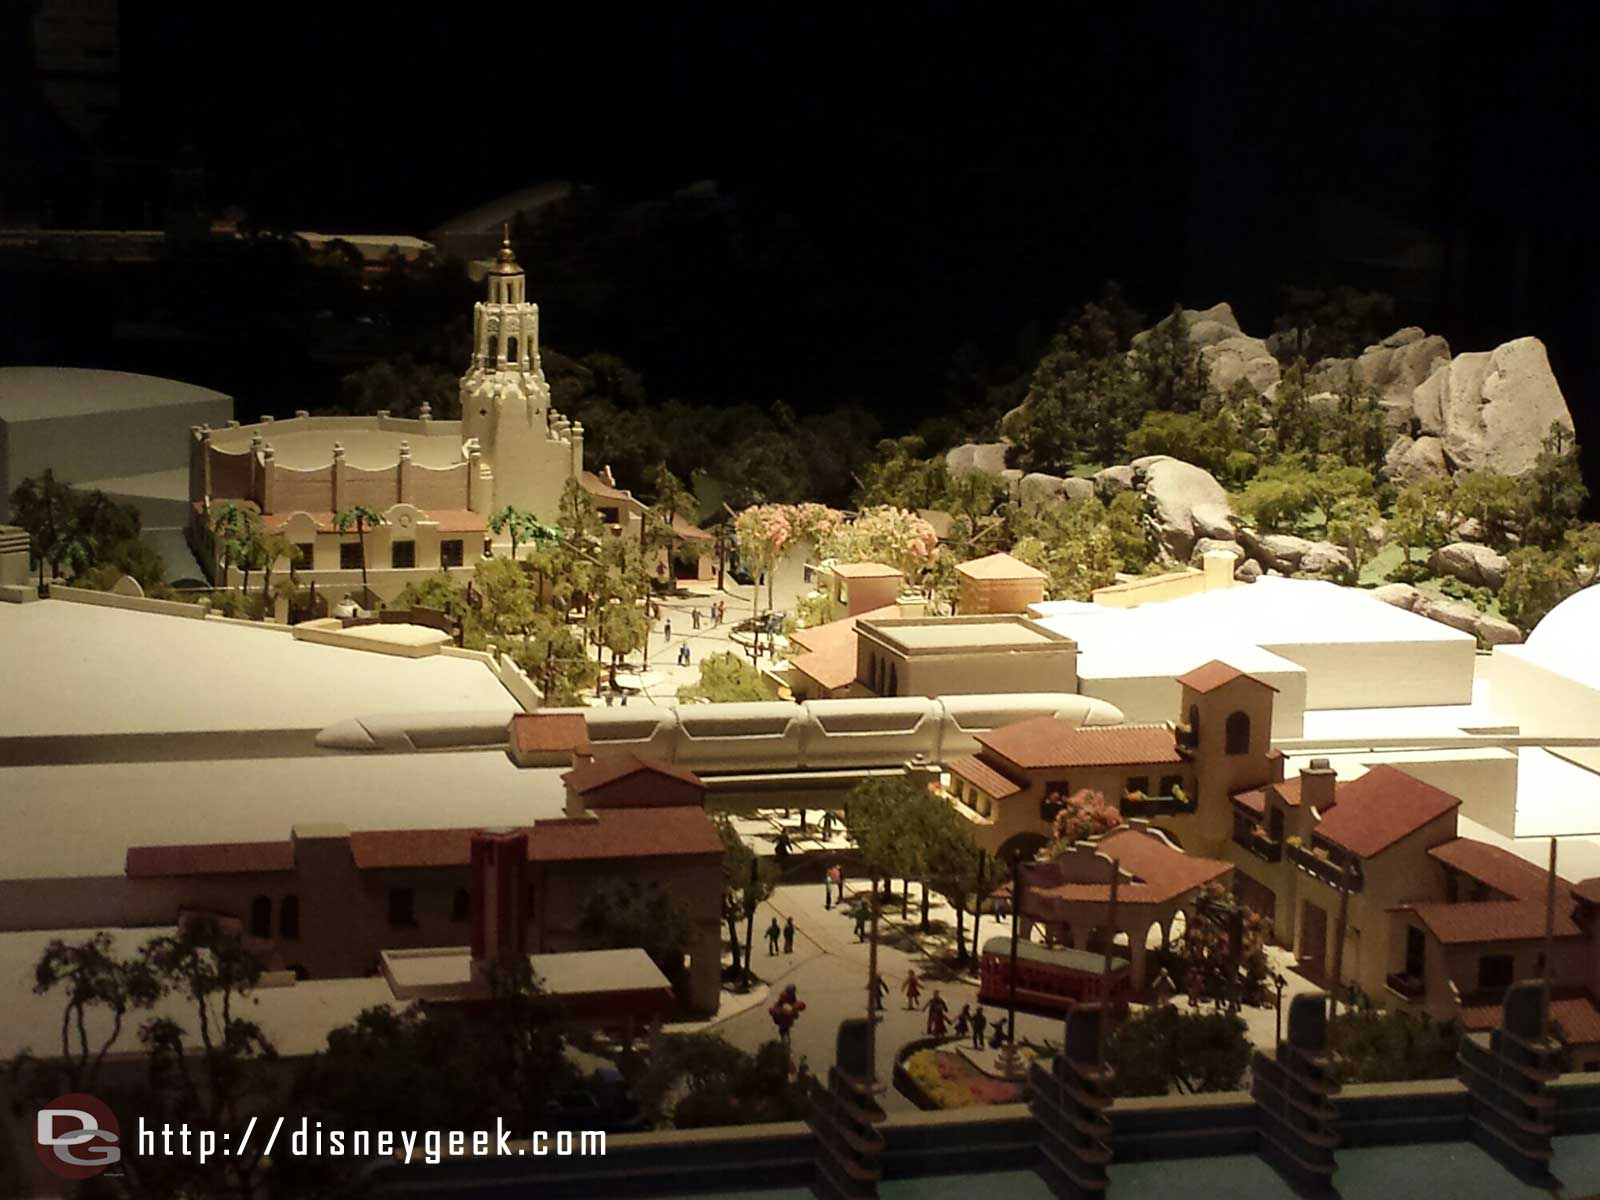 The Buena Vista Street Model is still in One Man's Dream. The new Fantasyland one is gone though.